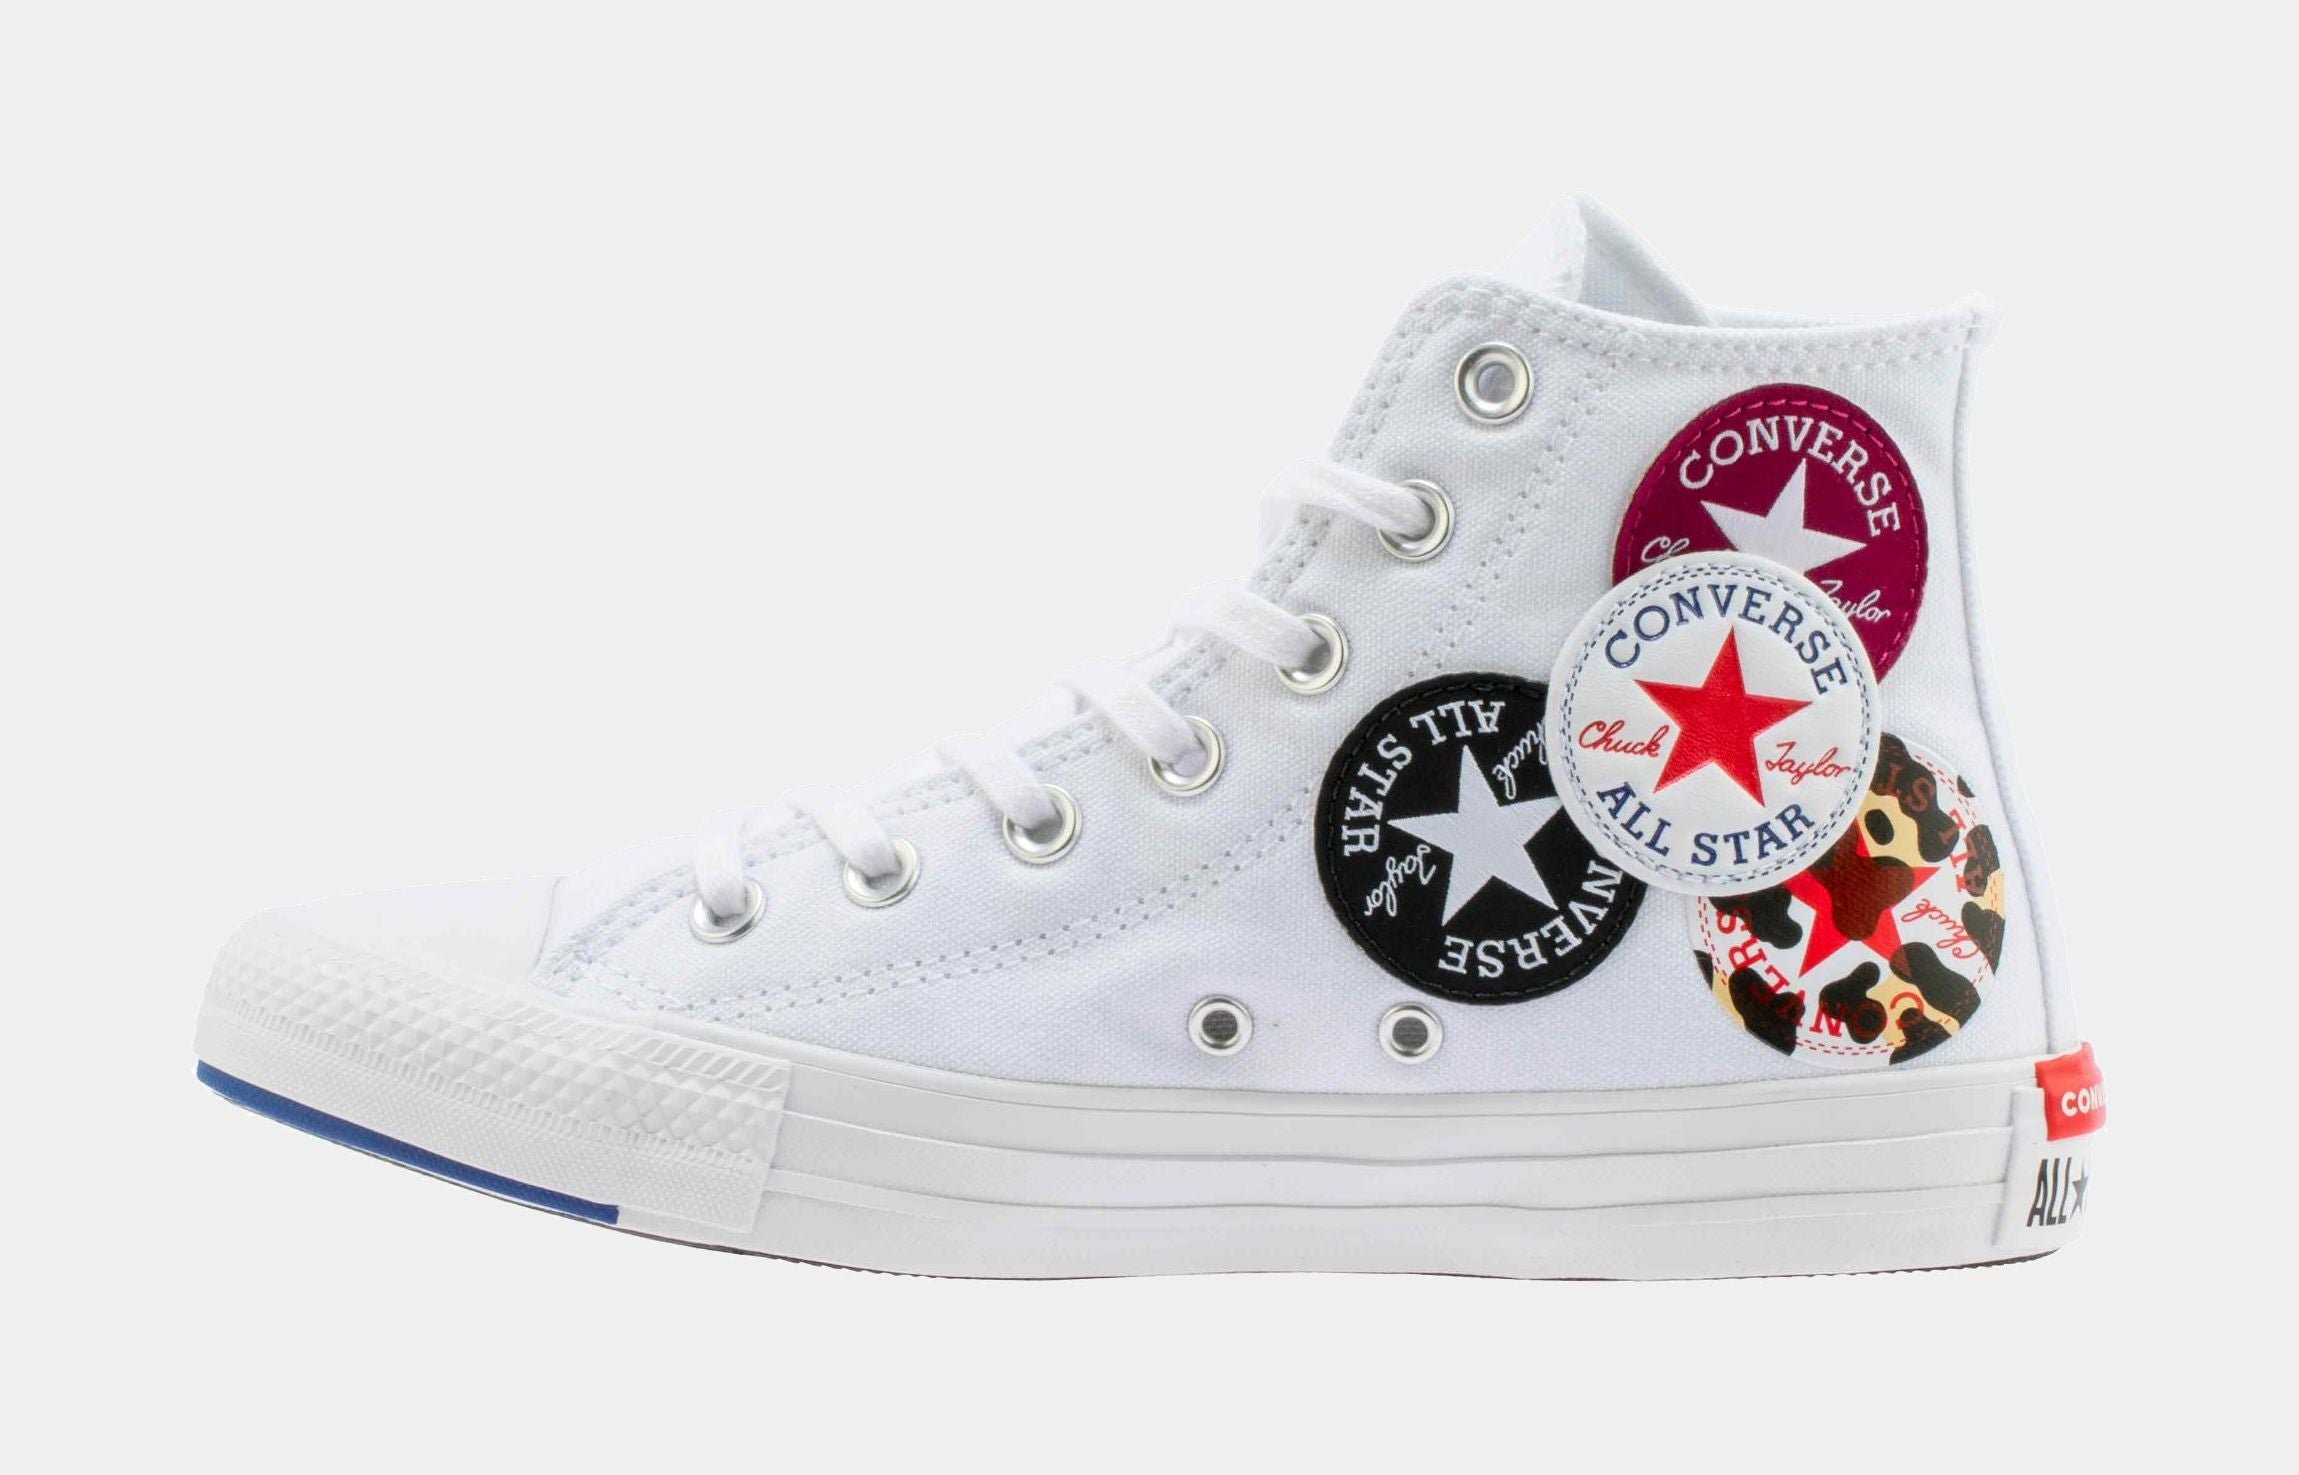 Chuck Taylor All Star Twisted Classics HI Mens LIfestyle Shoe (White/Red/Blue)